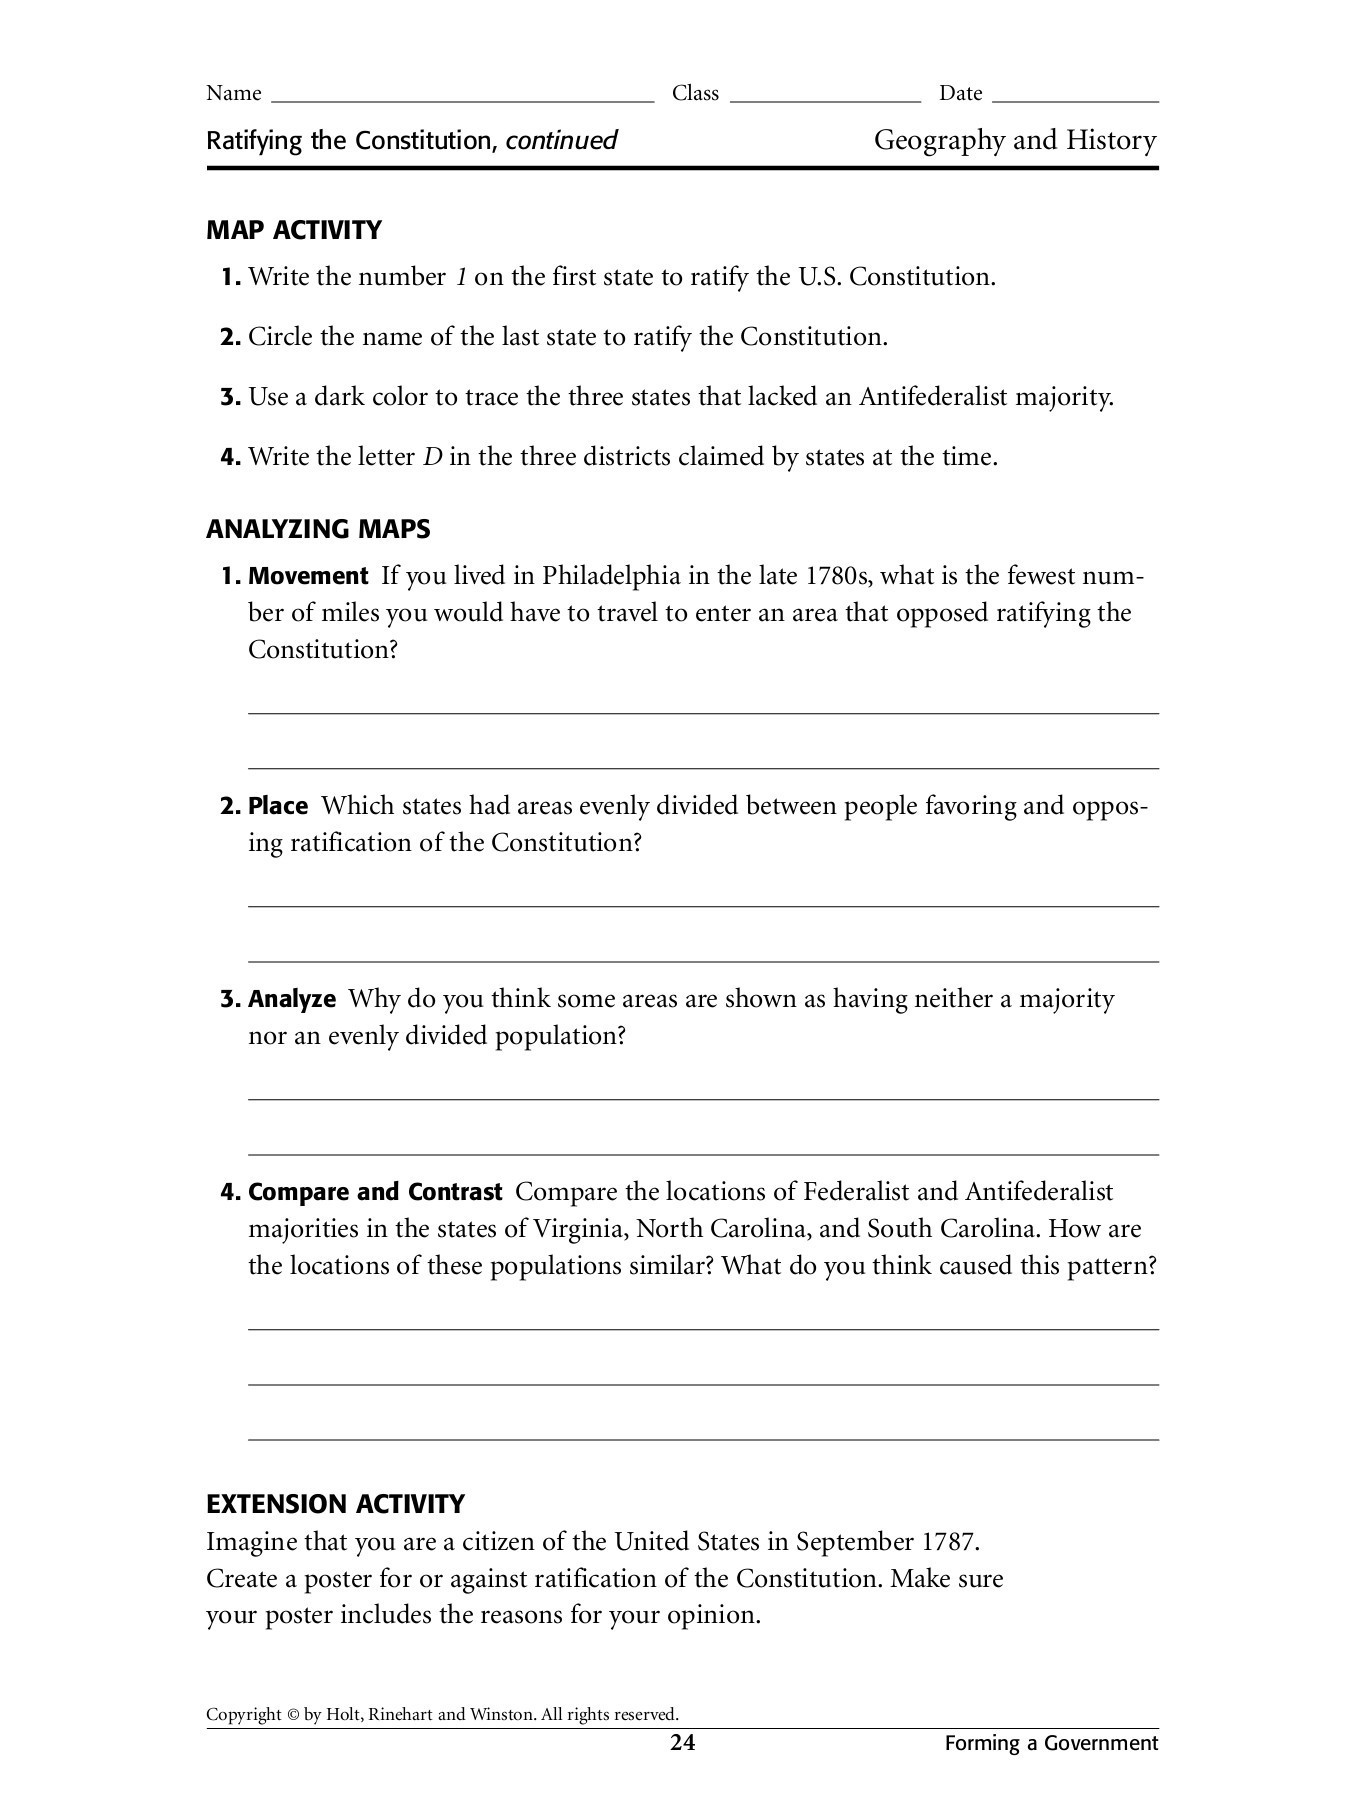 Ratifying the Constitution Worksheet Answers Ratifying the Constitution Neomin Pages 1 4 Text